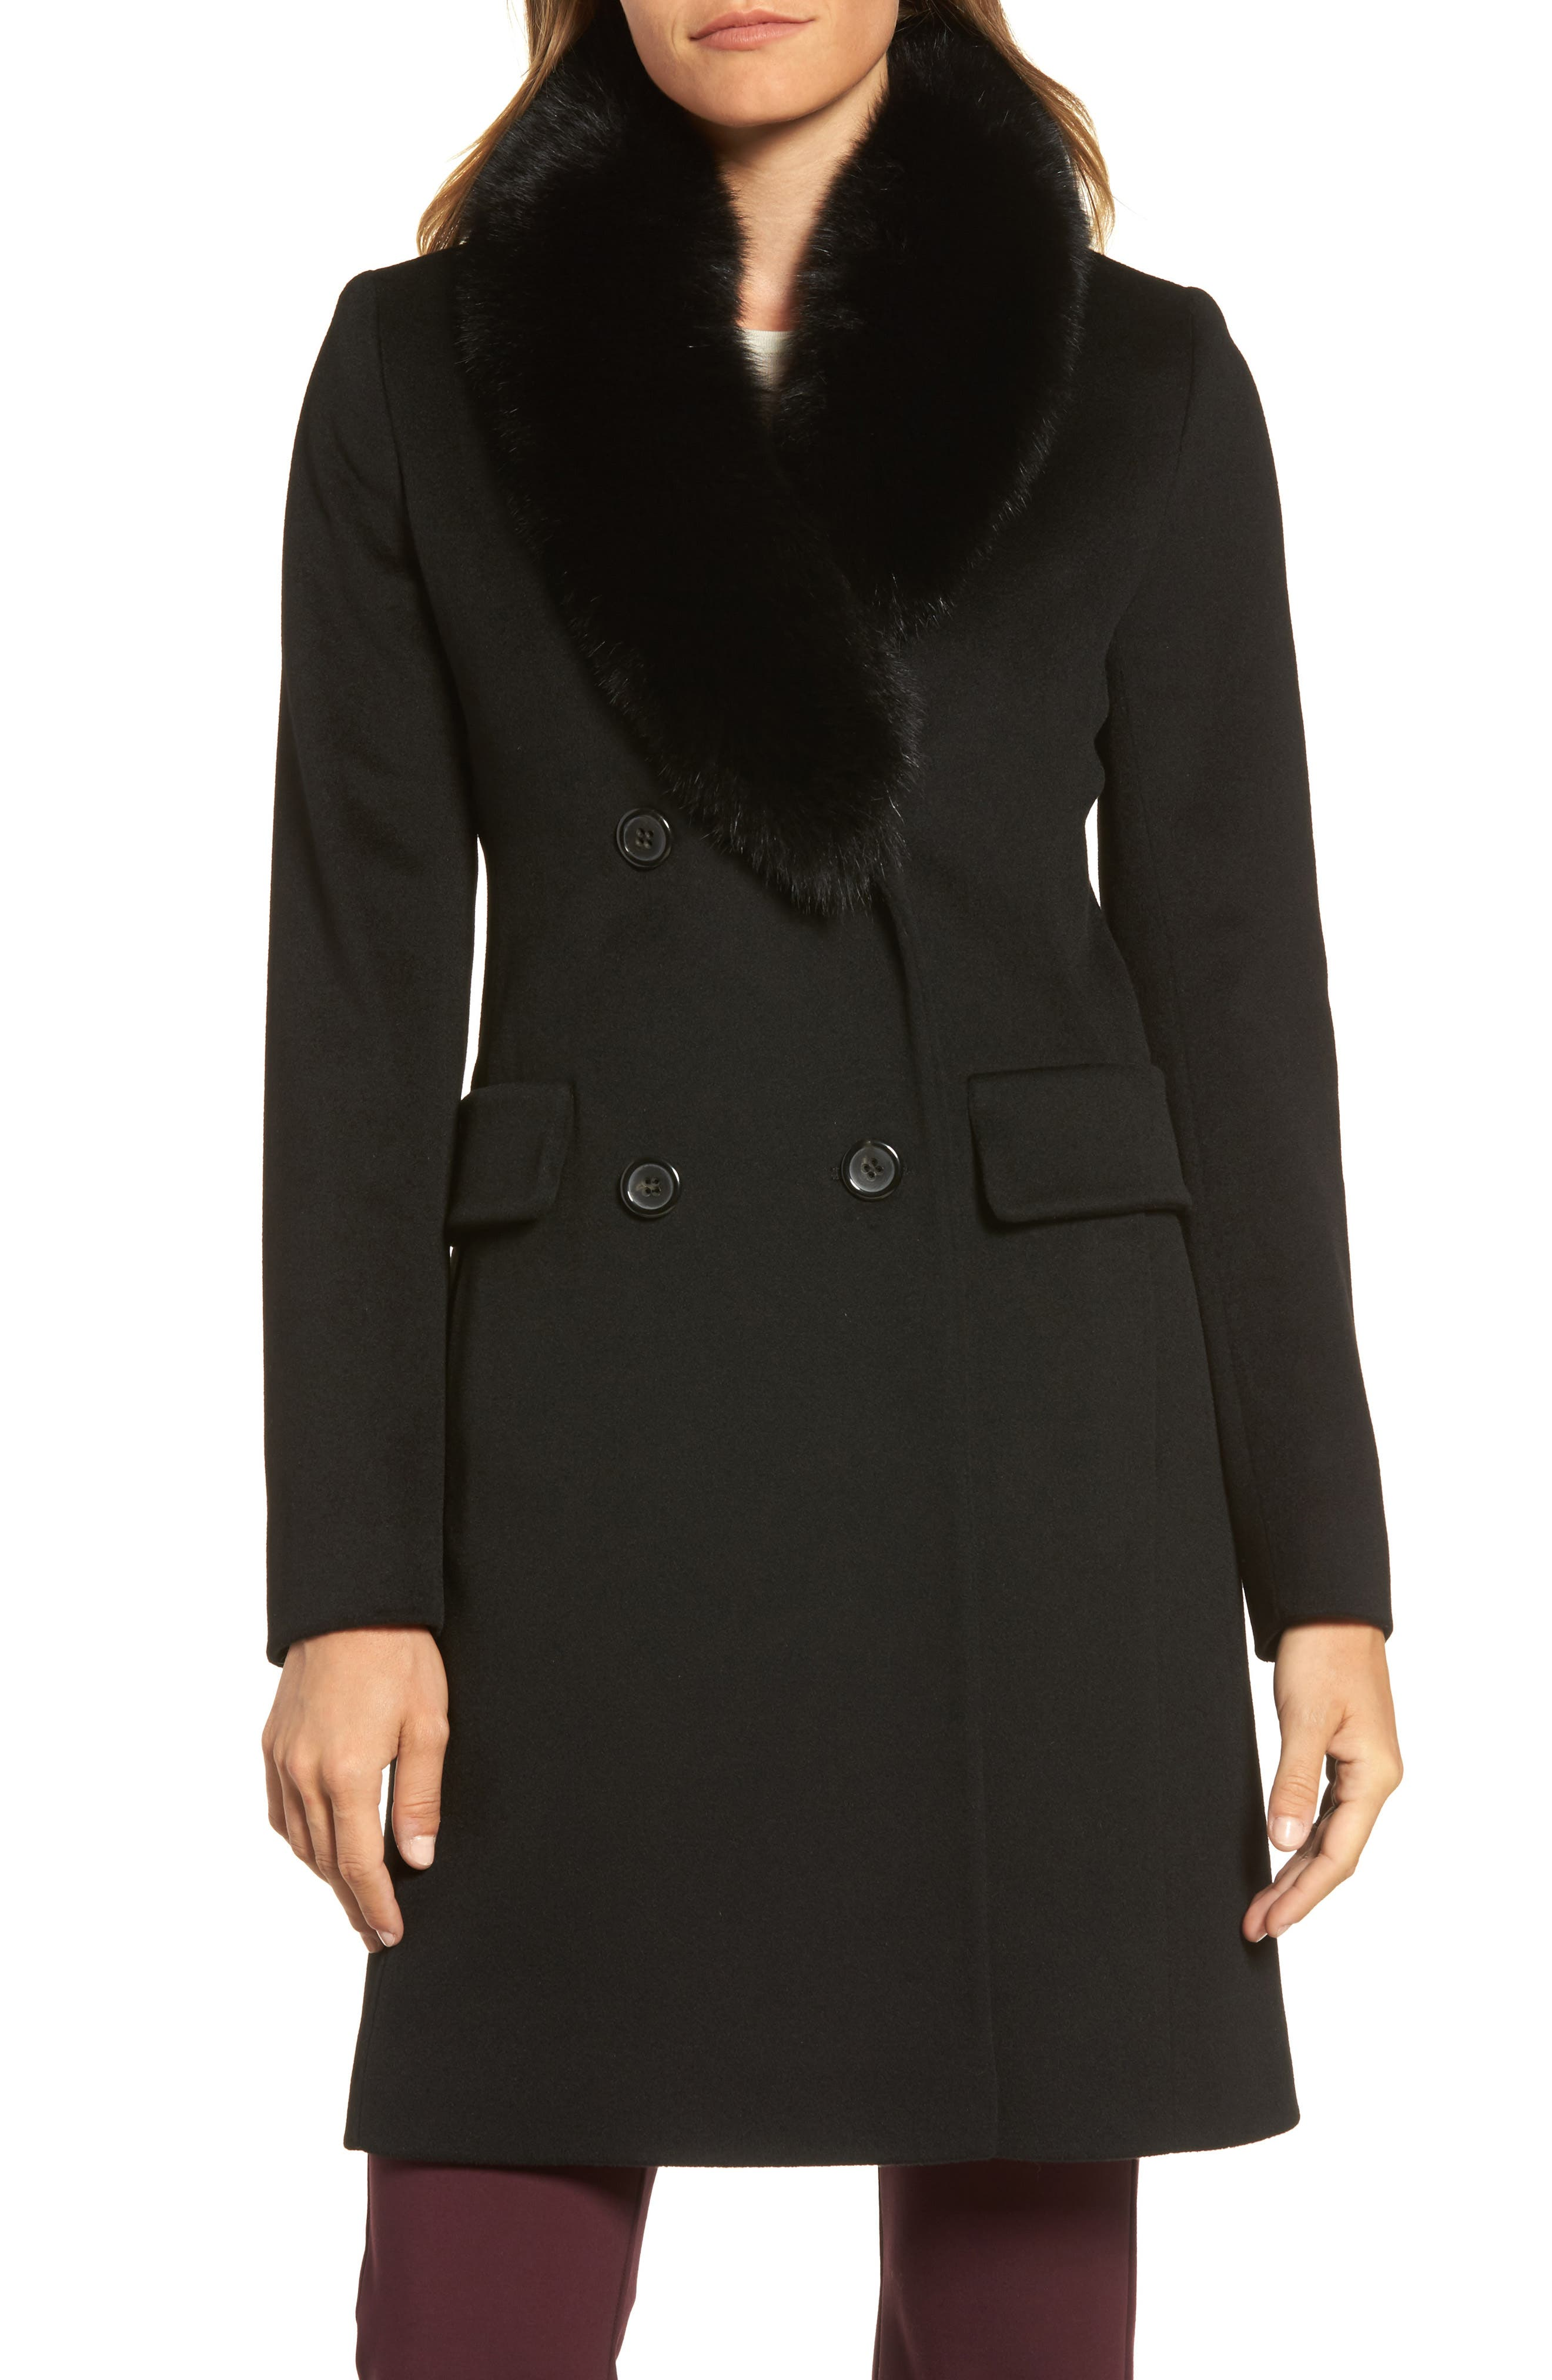 Fleurette Loro Piana Wool Coat with Genuine Fox Fur Collar